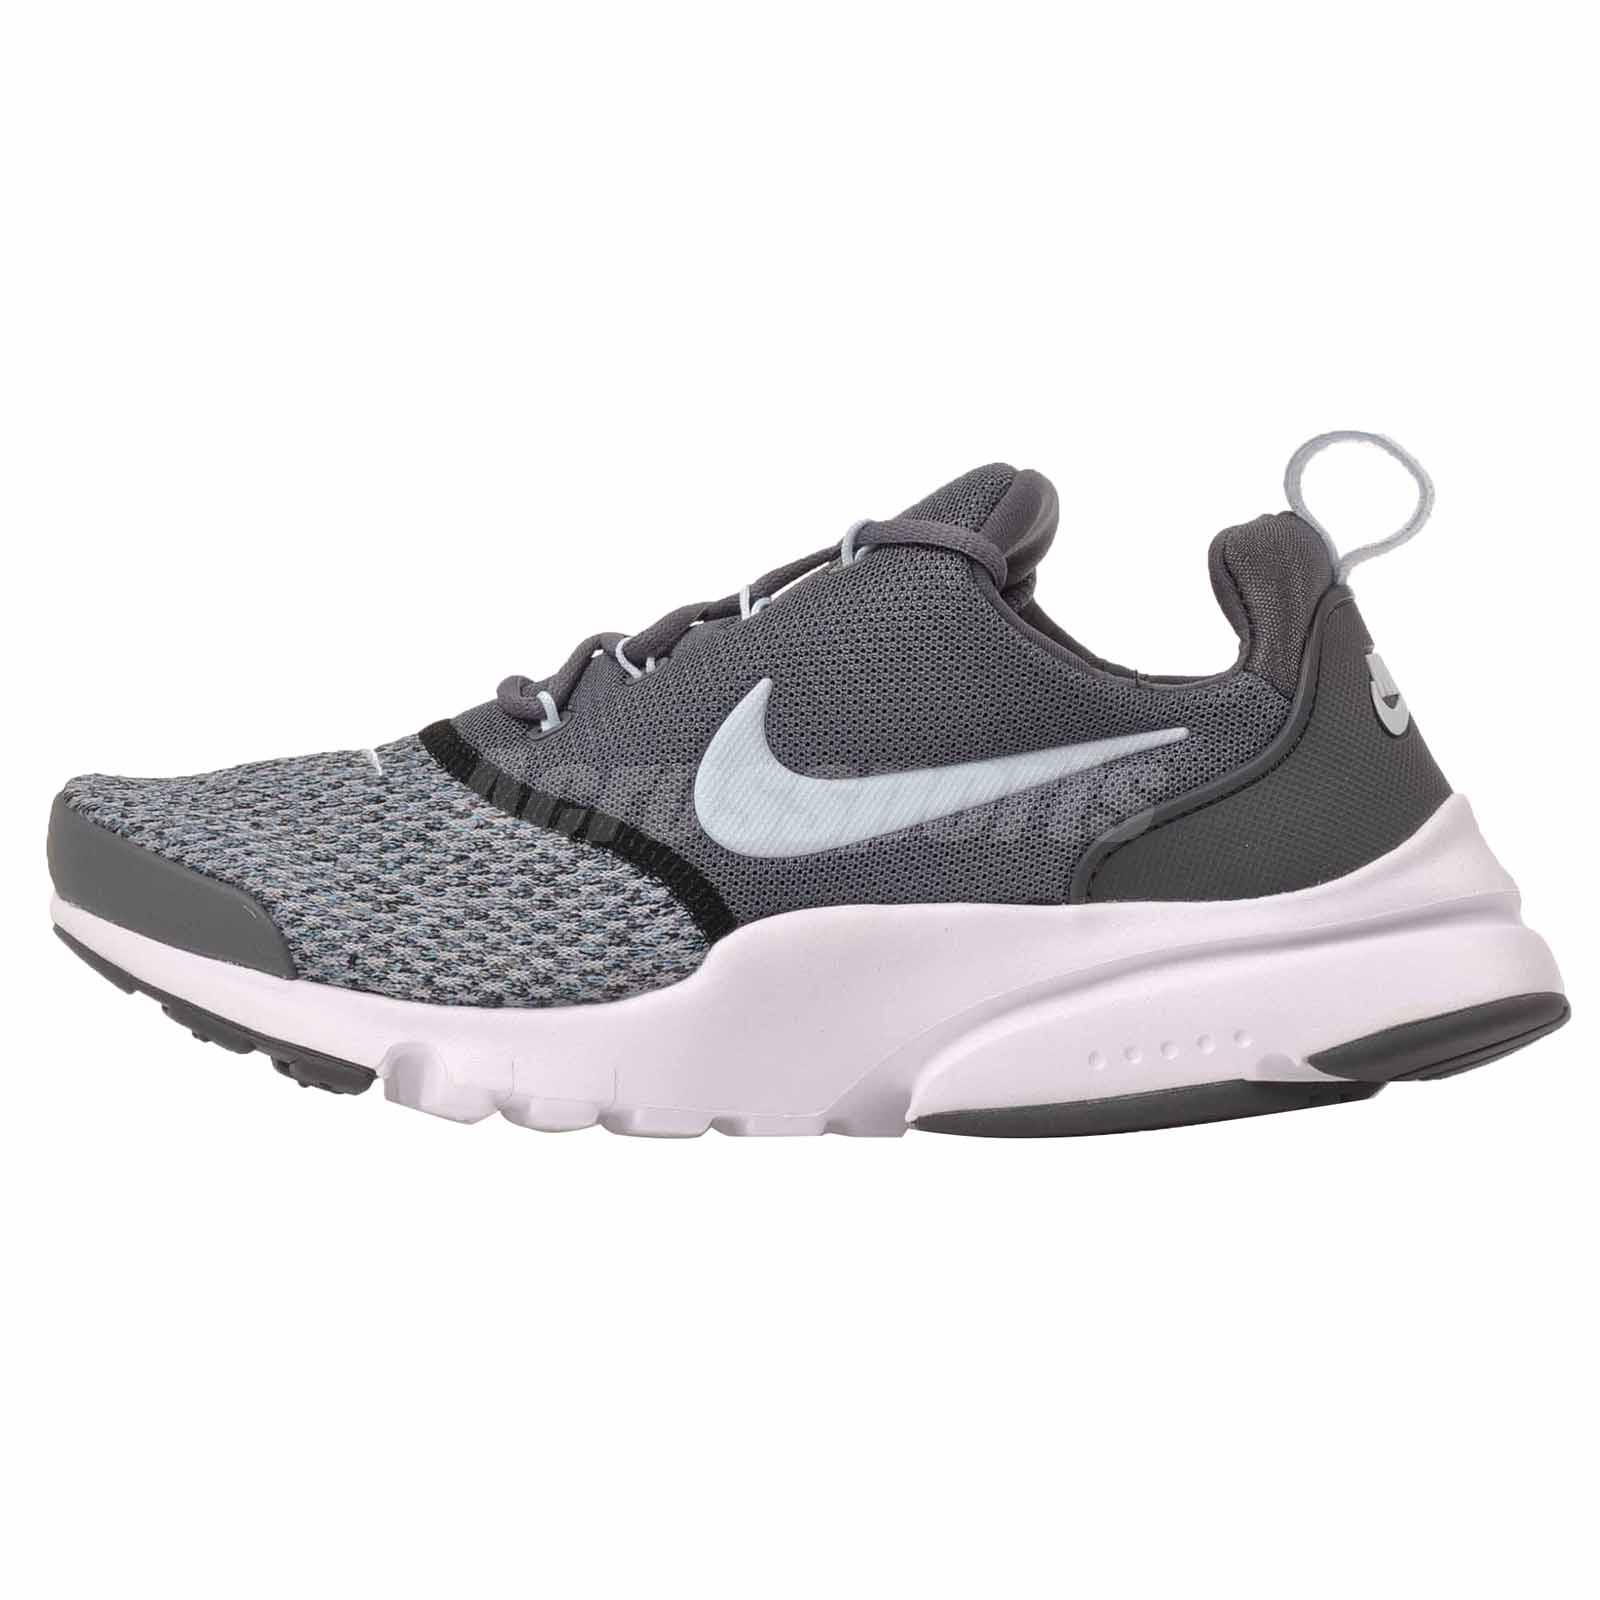 1cc4d04f8 Details about Nike Presto Fly SE (GS) Kids Youth Womens Running Shoes Grey  AA3061-001